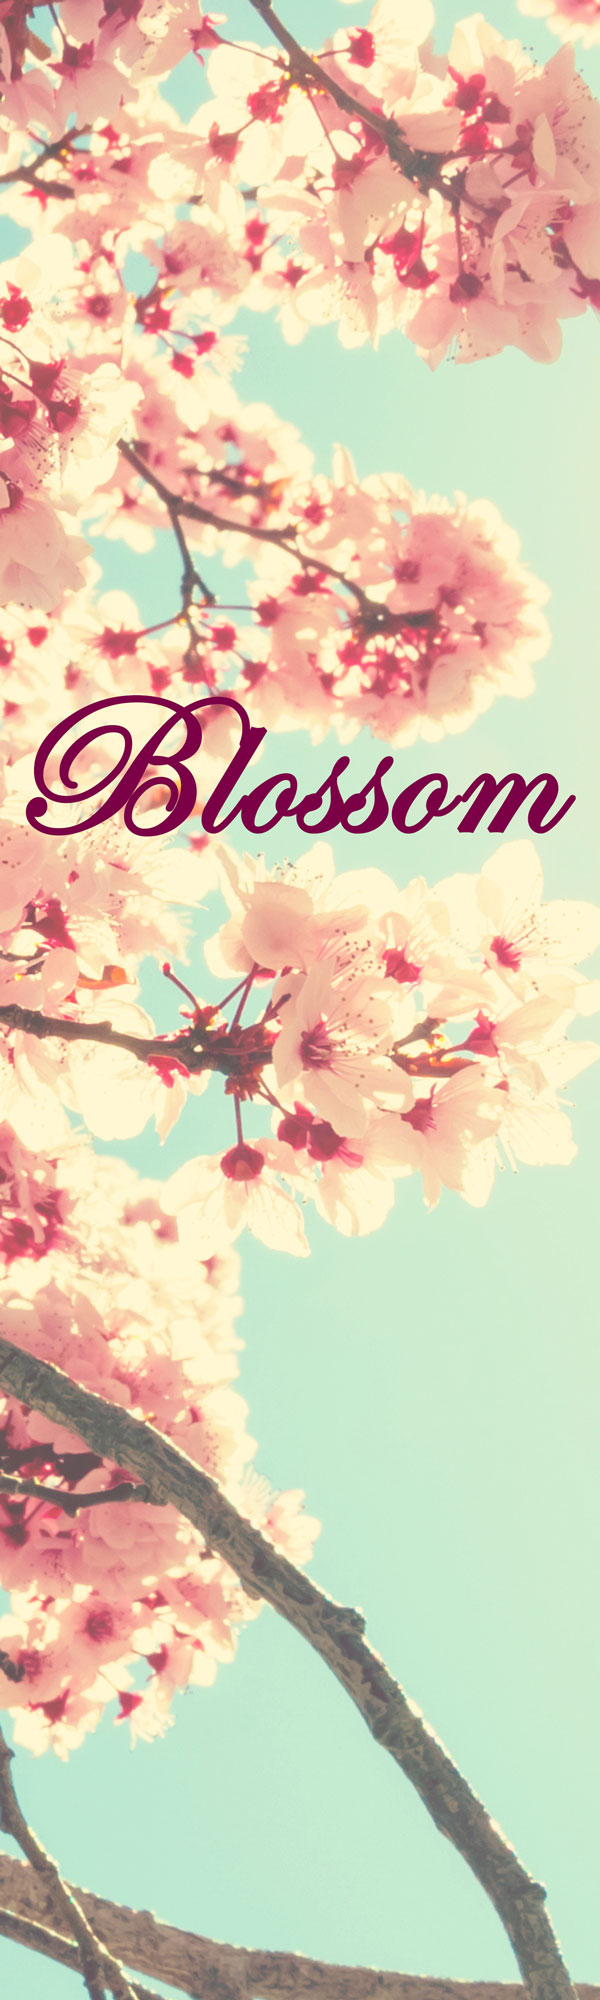 The Name Blossom Is An English Baby Name In English The Meaning Of The Name Blossom Is Fresh English Baby Names Baby Names Cute Names